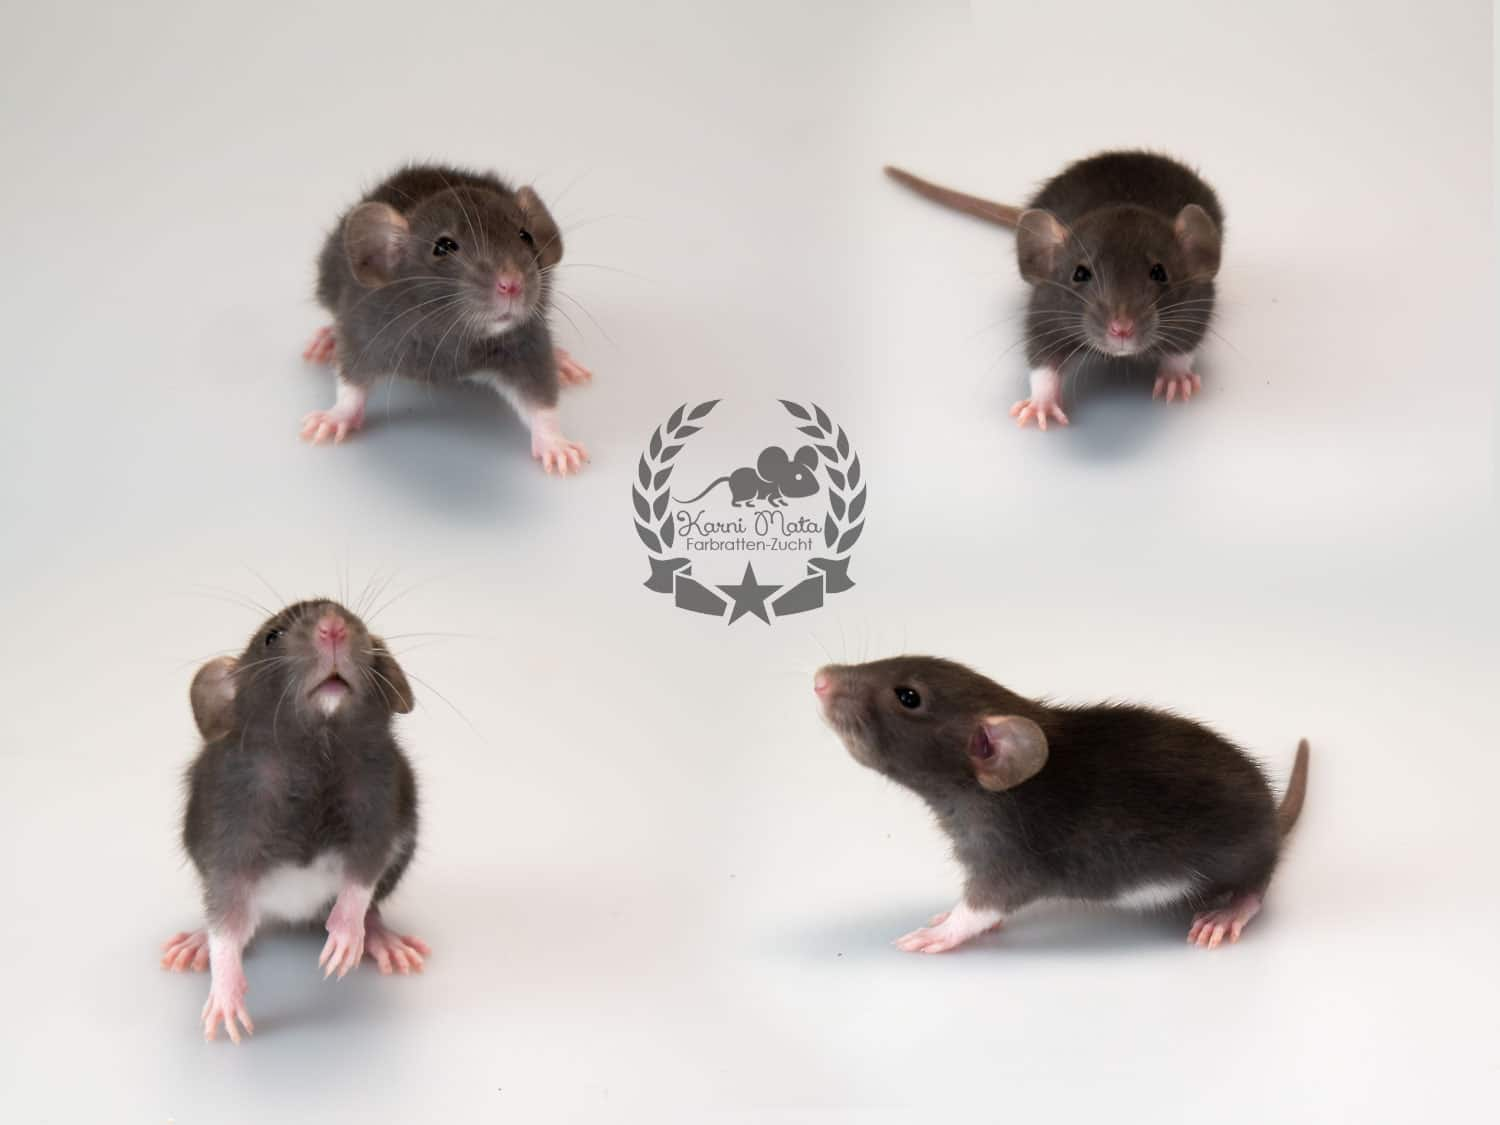 The Oracle Farbratte/Fancyrat, Black Berskhire Dumbo Dwarf